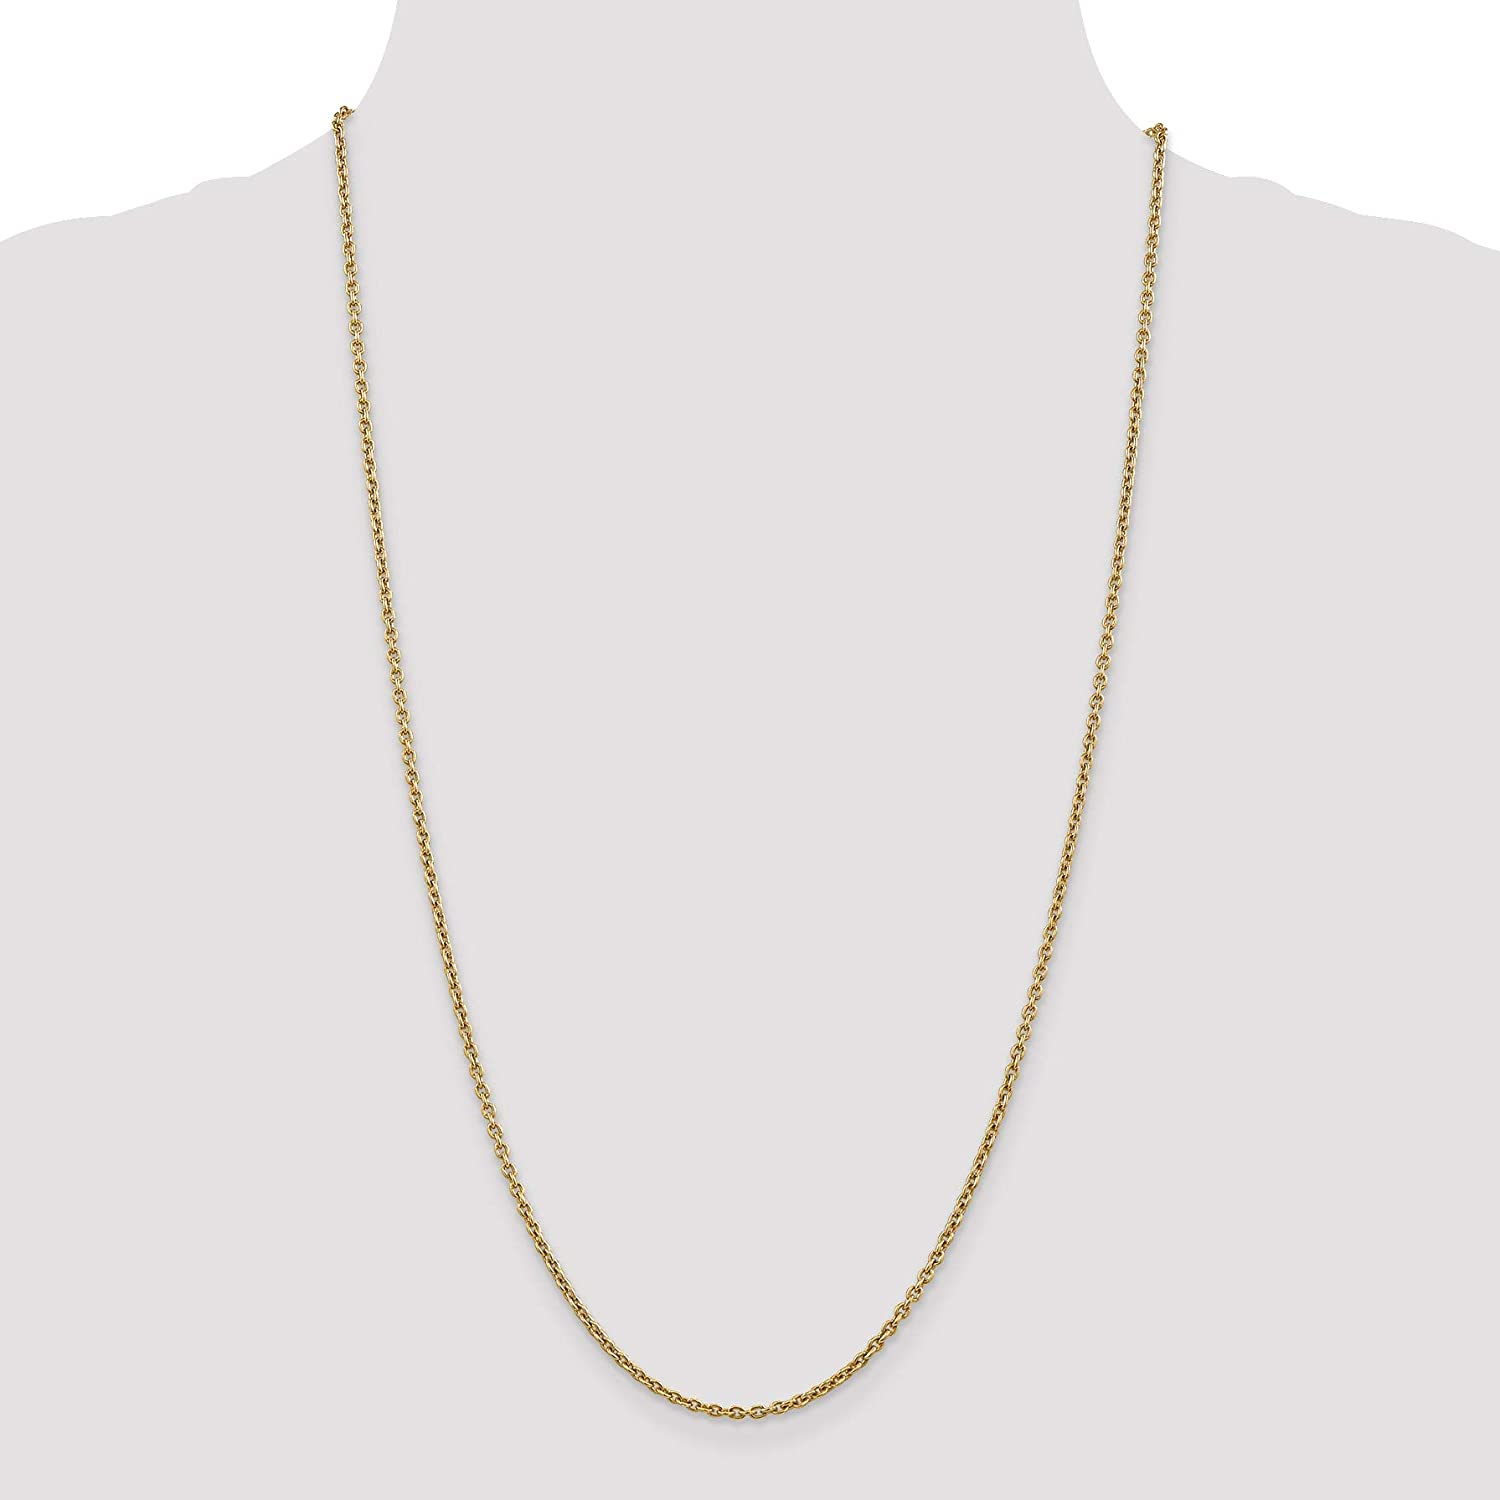 Bonyak Jewelry 14k 2.2mm Solid Polished Cable Chain Anklet in 14k Yellow Gold